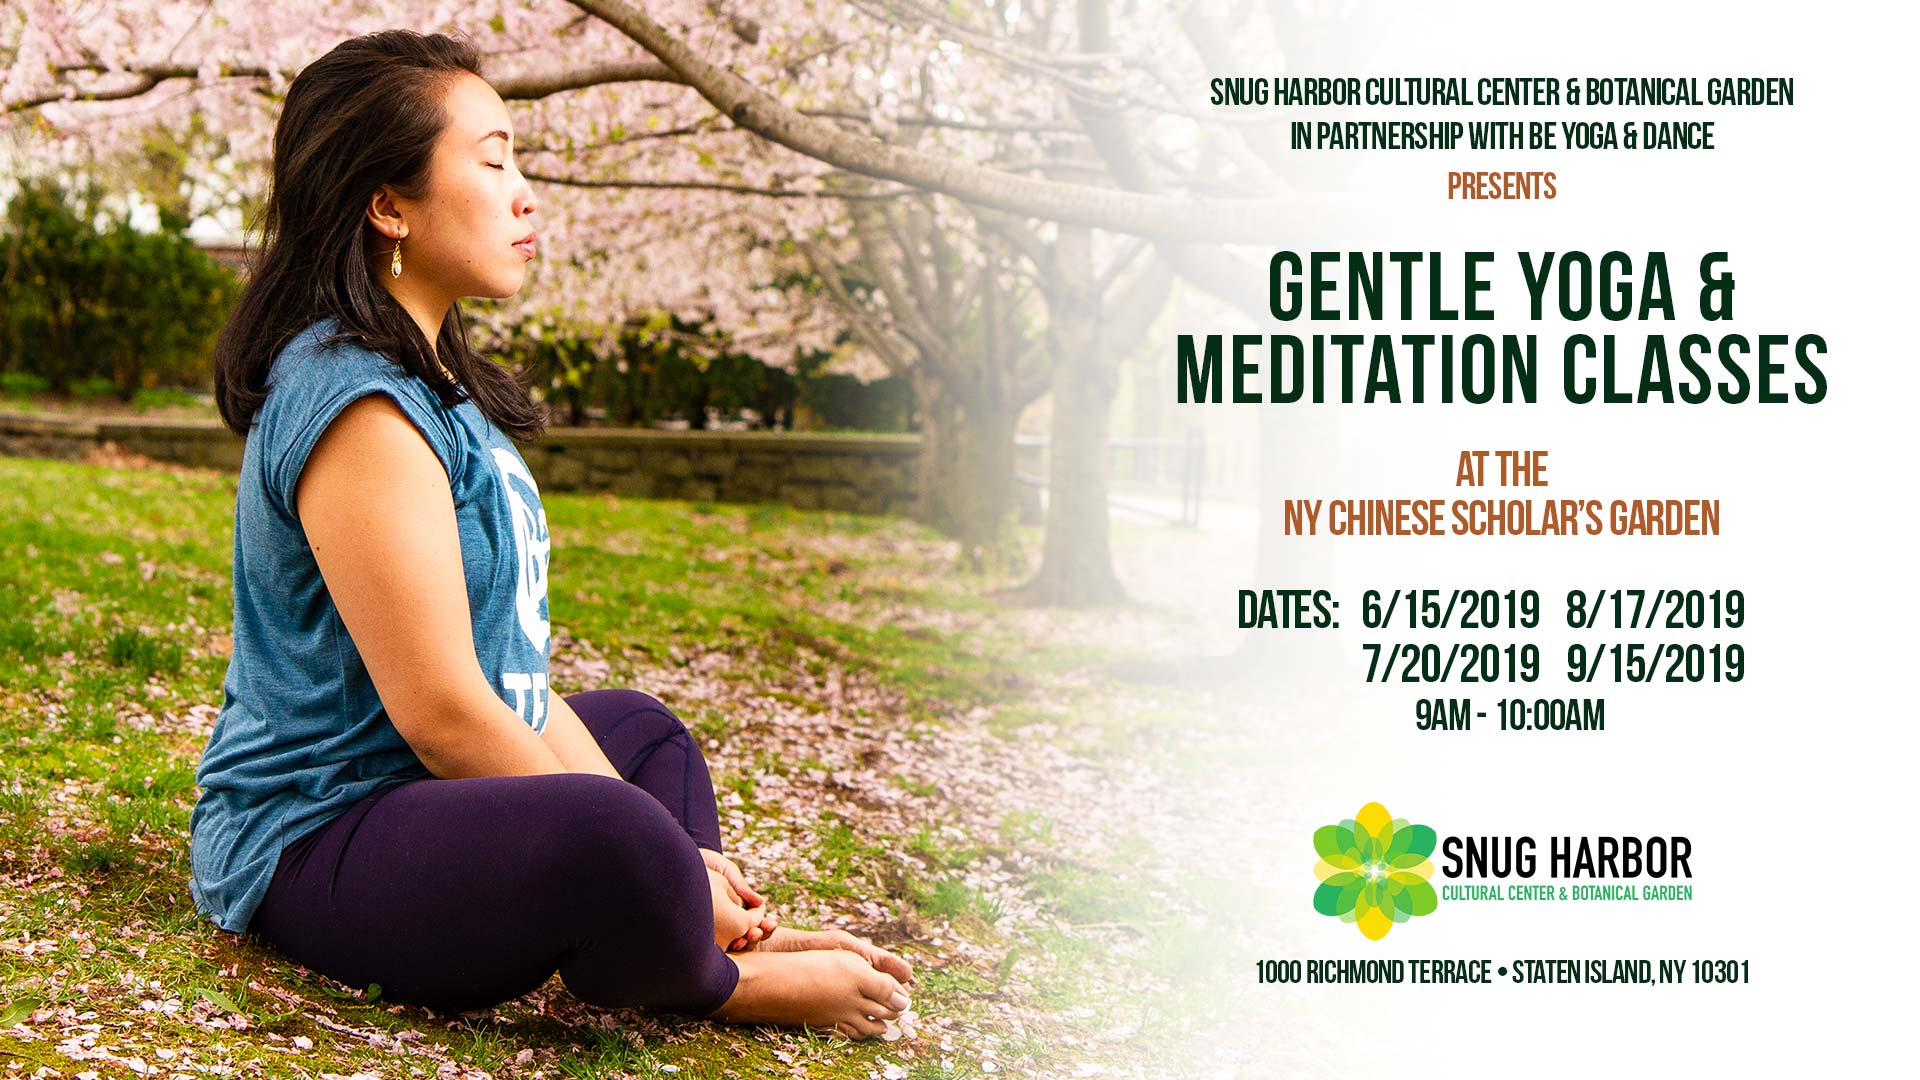 Gentle Yoga & Meditation Classes with BE Yoga